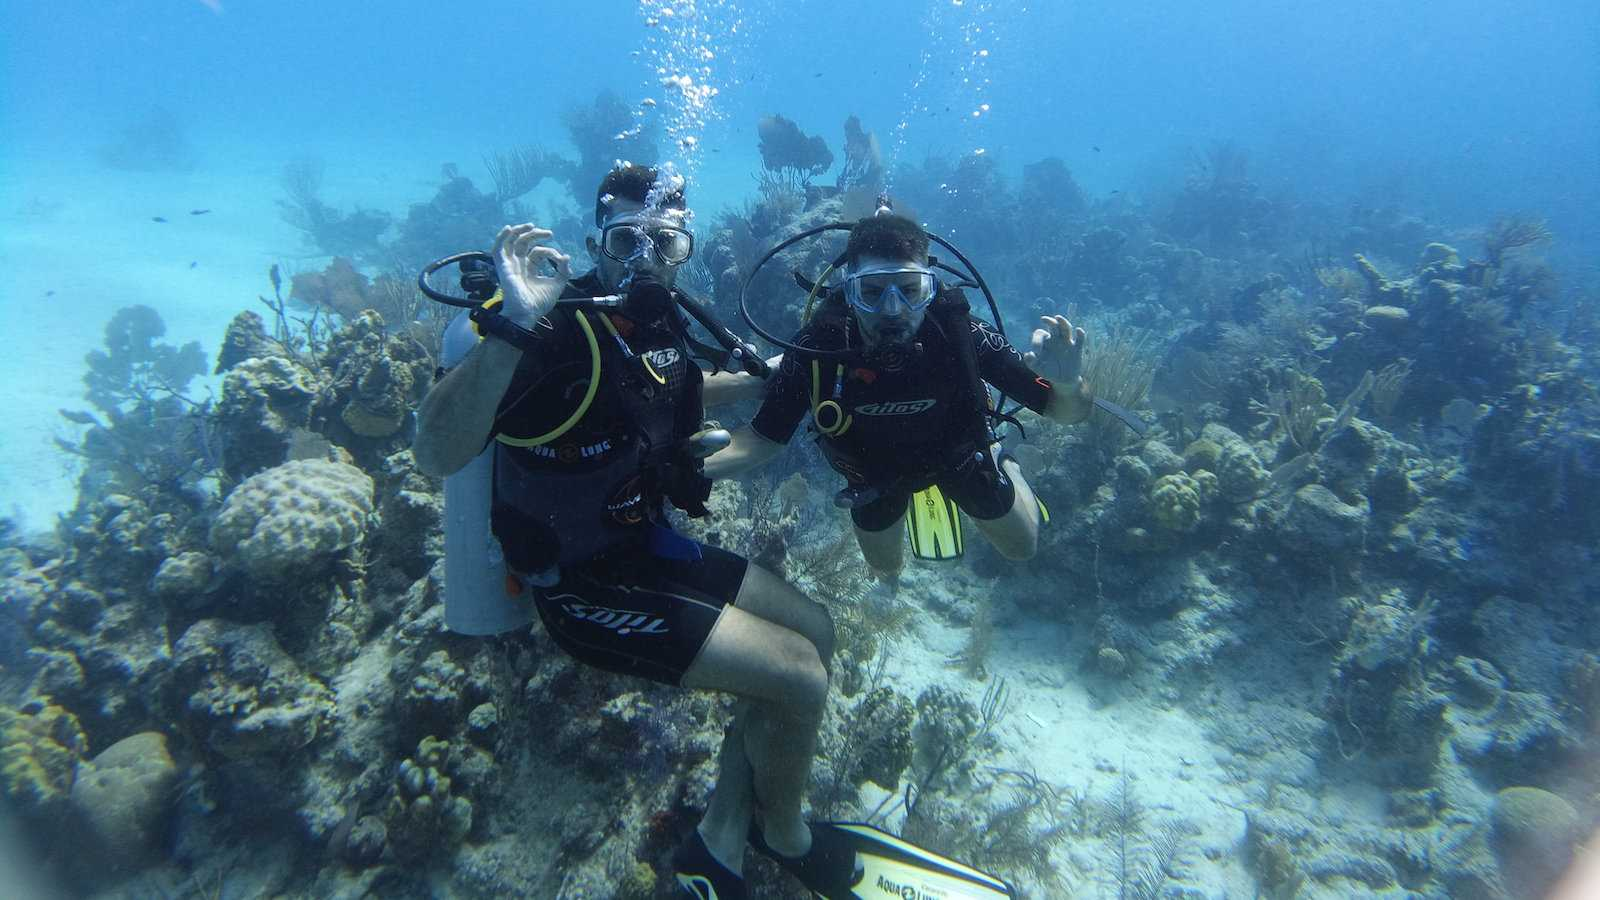 Having the time of our lives diving in the Caribbean on a gay liveaboard trip